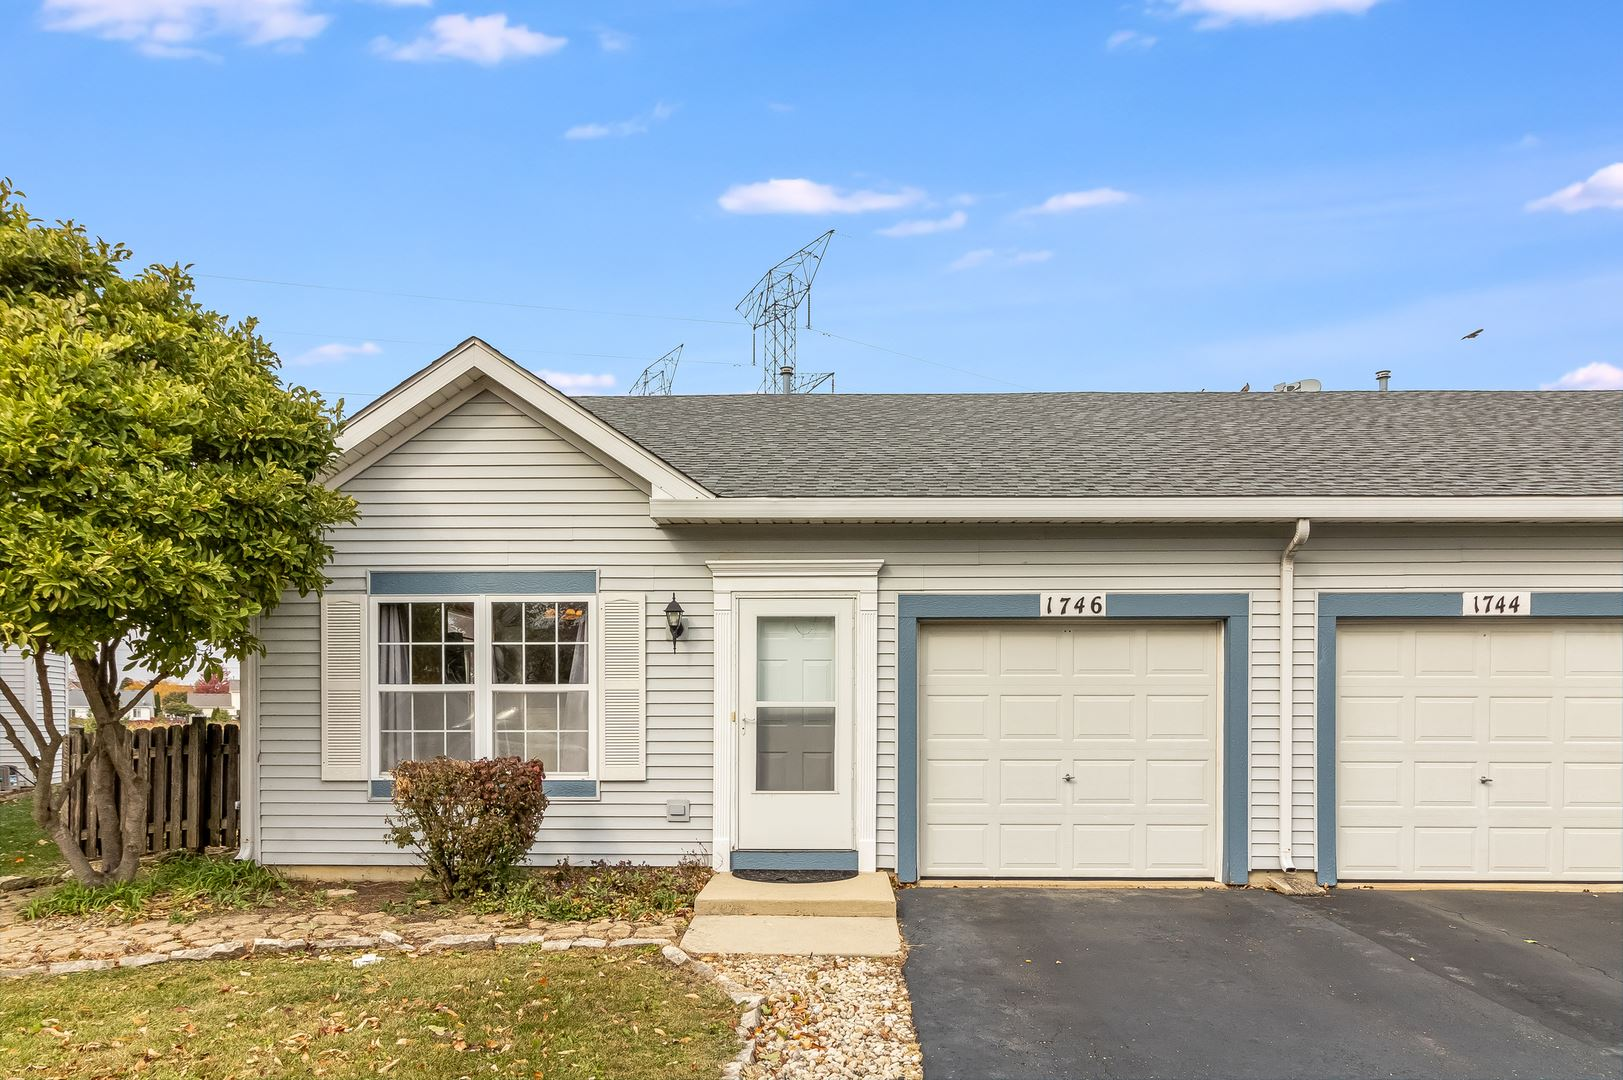 Photo of 1746 Raleigh Trail, Romeoville, IL 60446 (MLS # 10913768)